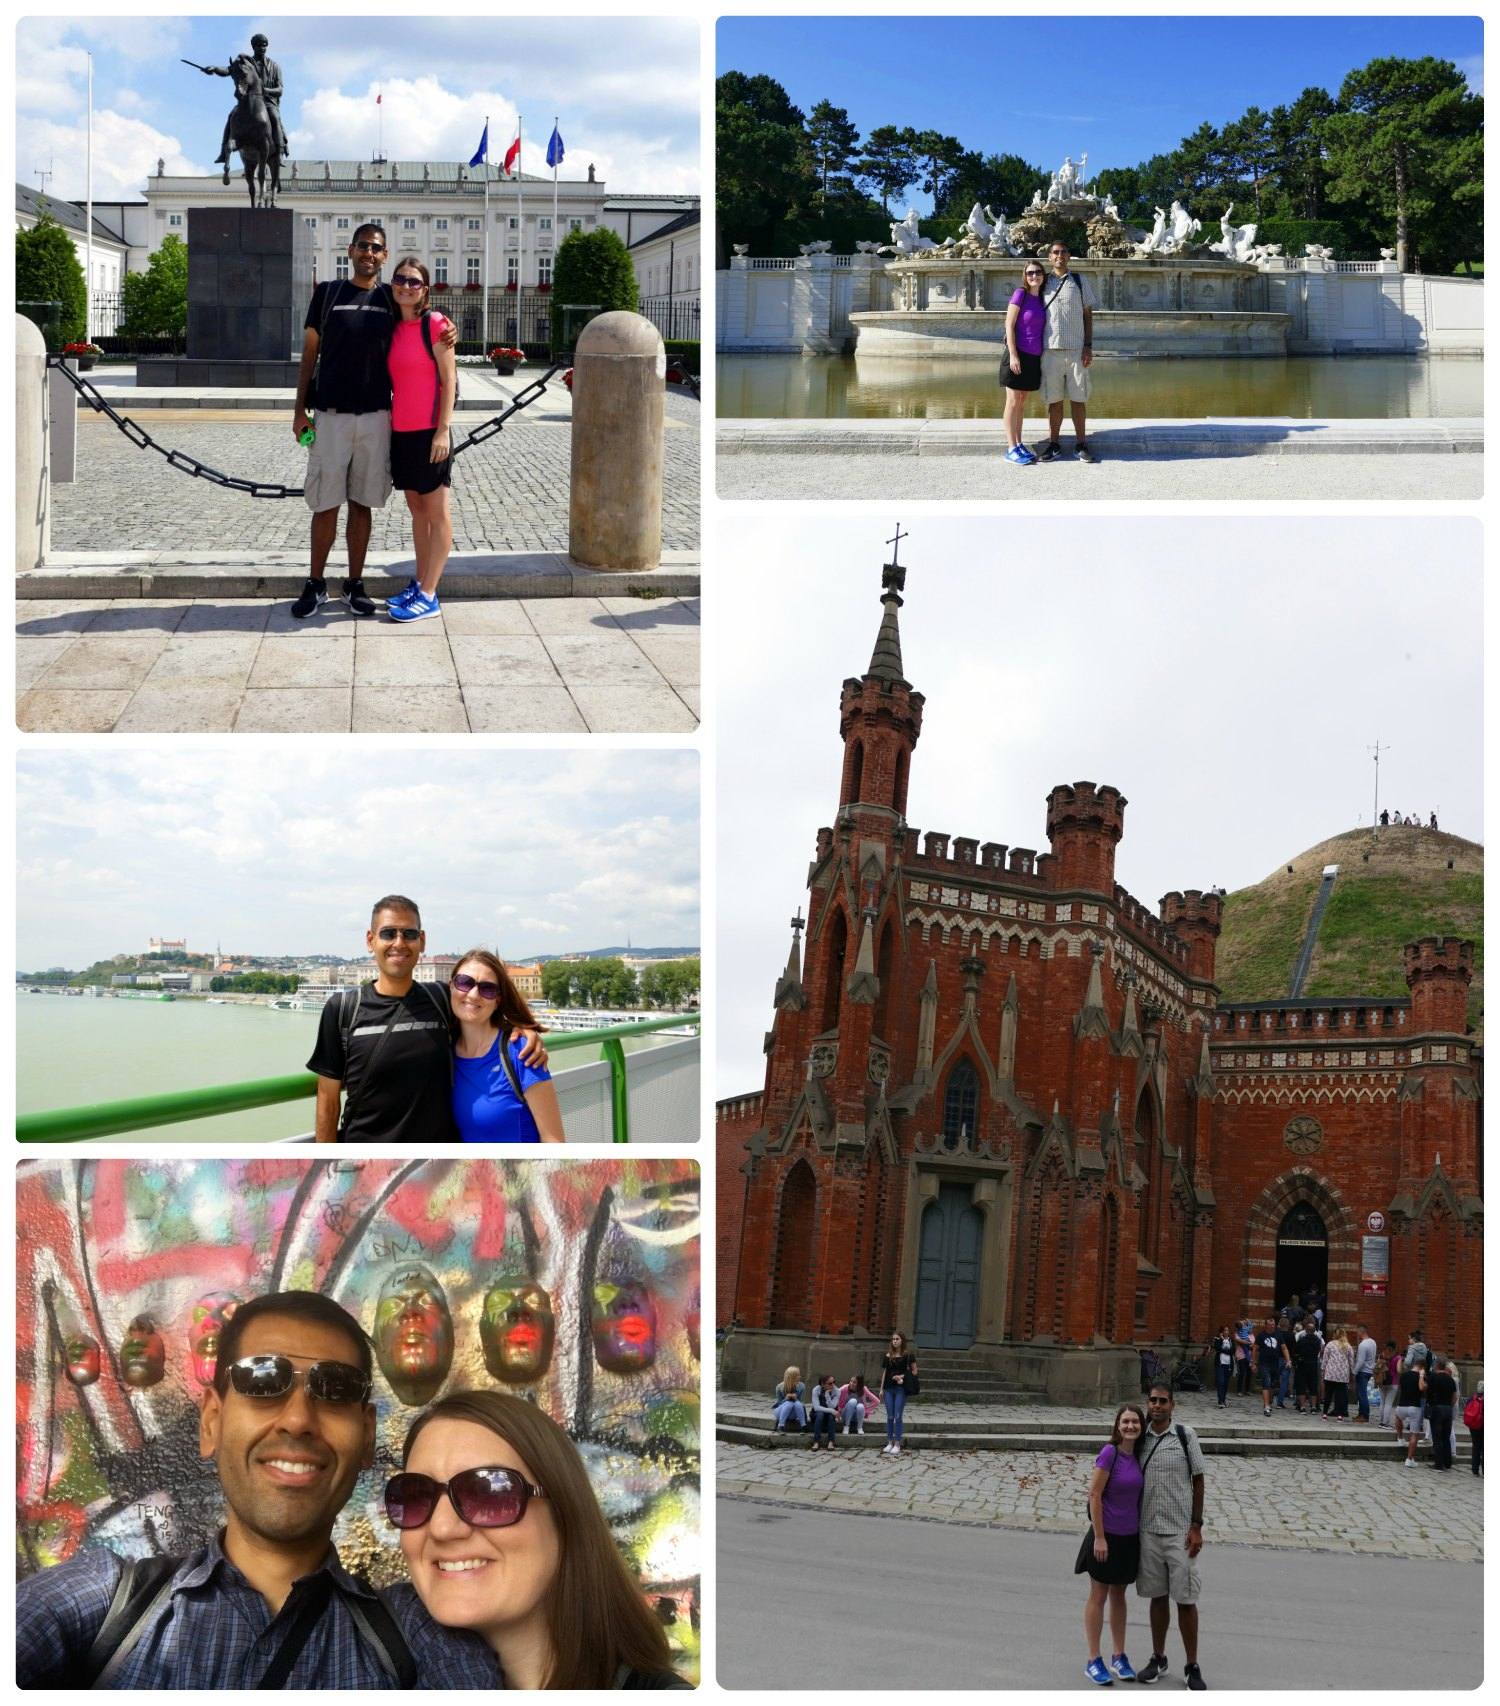 We had an adventure on our fast paced tour through (clockwise from the top left) Warsaw, Vienna, Krakow, Prague, and Bratislava!